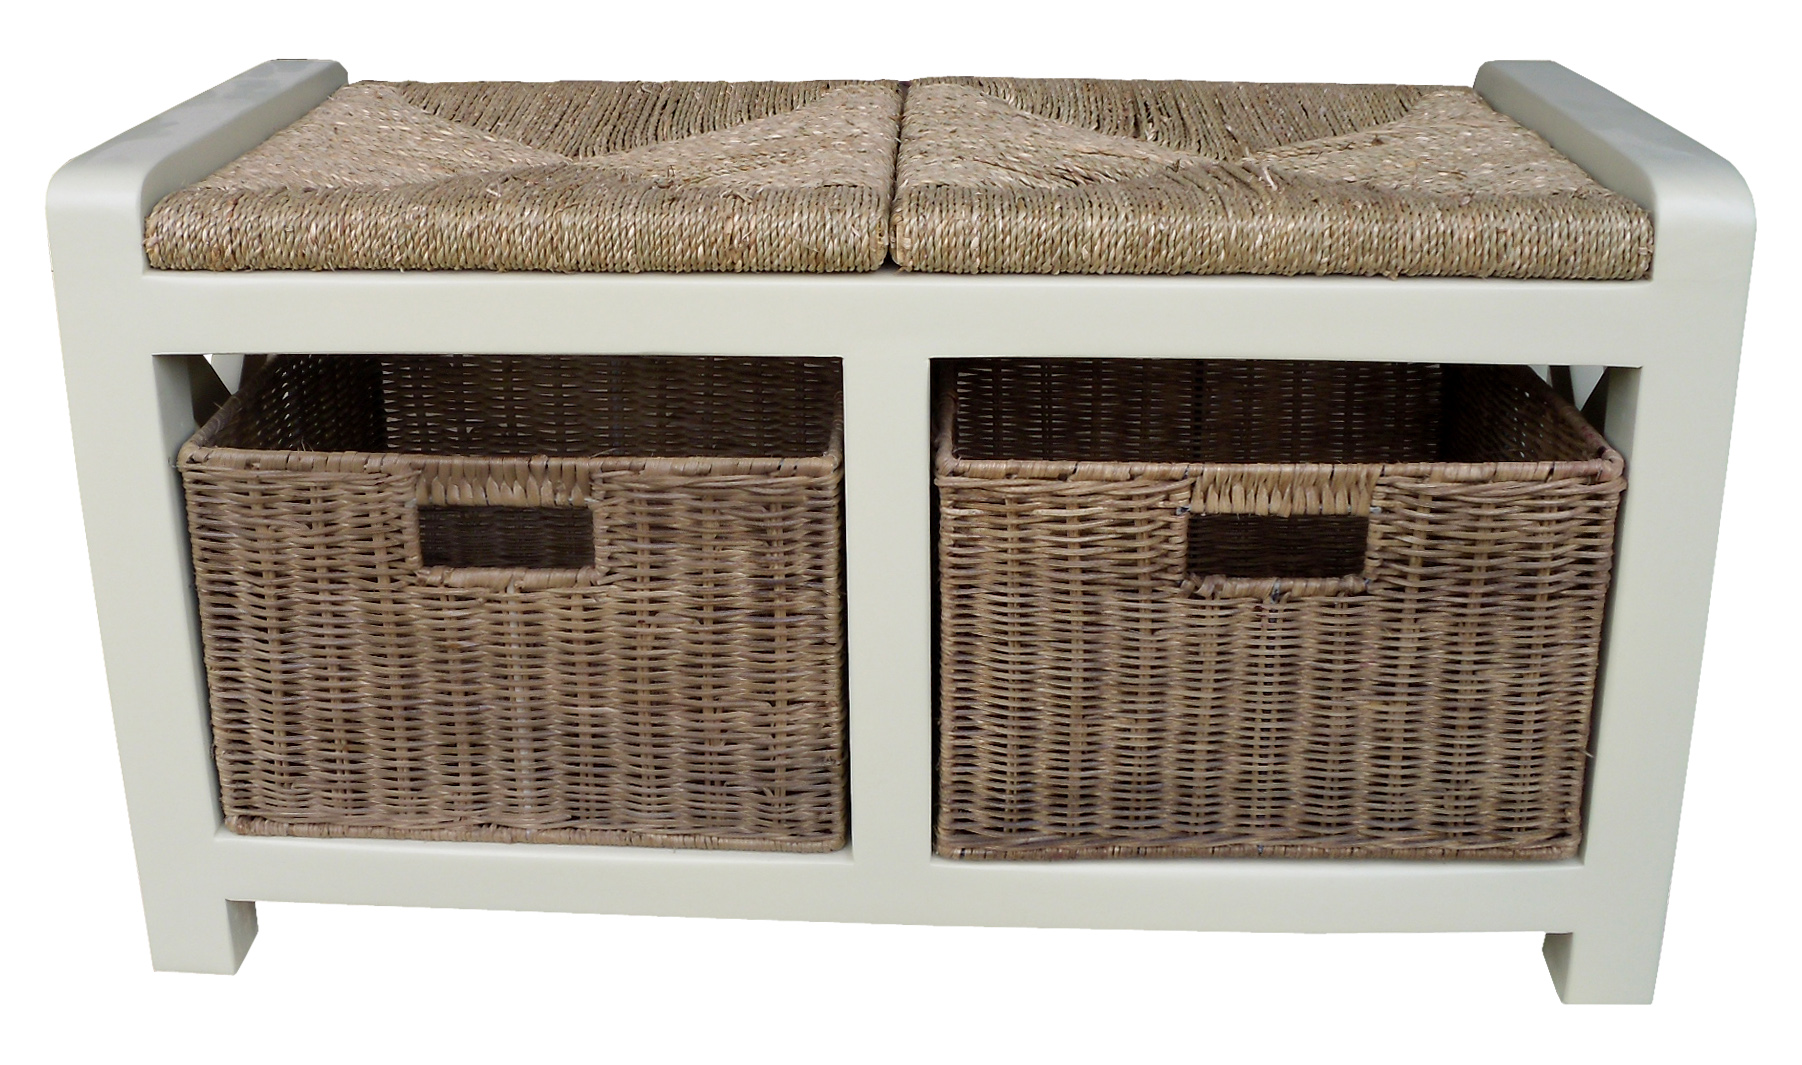 Cream Wooden Hallway 2 Seater Wicker Basket Drawer Shoe Storage Bench Seat Unit Ebay